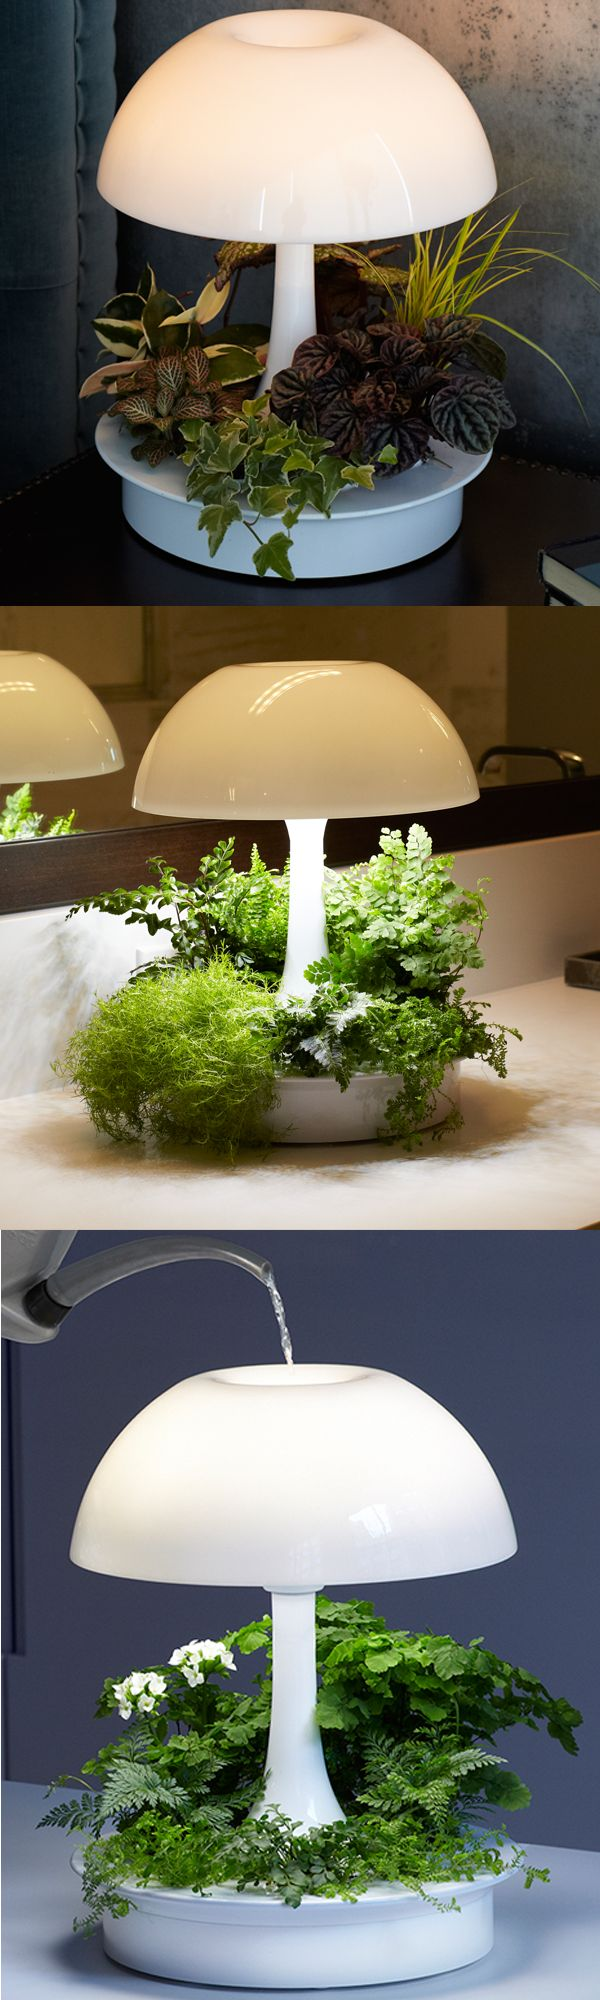 Best 25+ Grow lights ideas on Pinterest